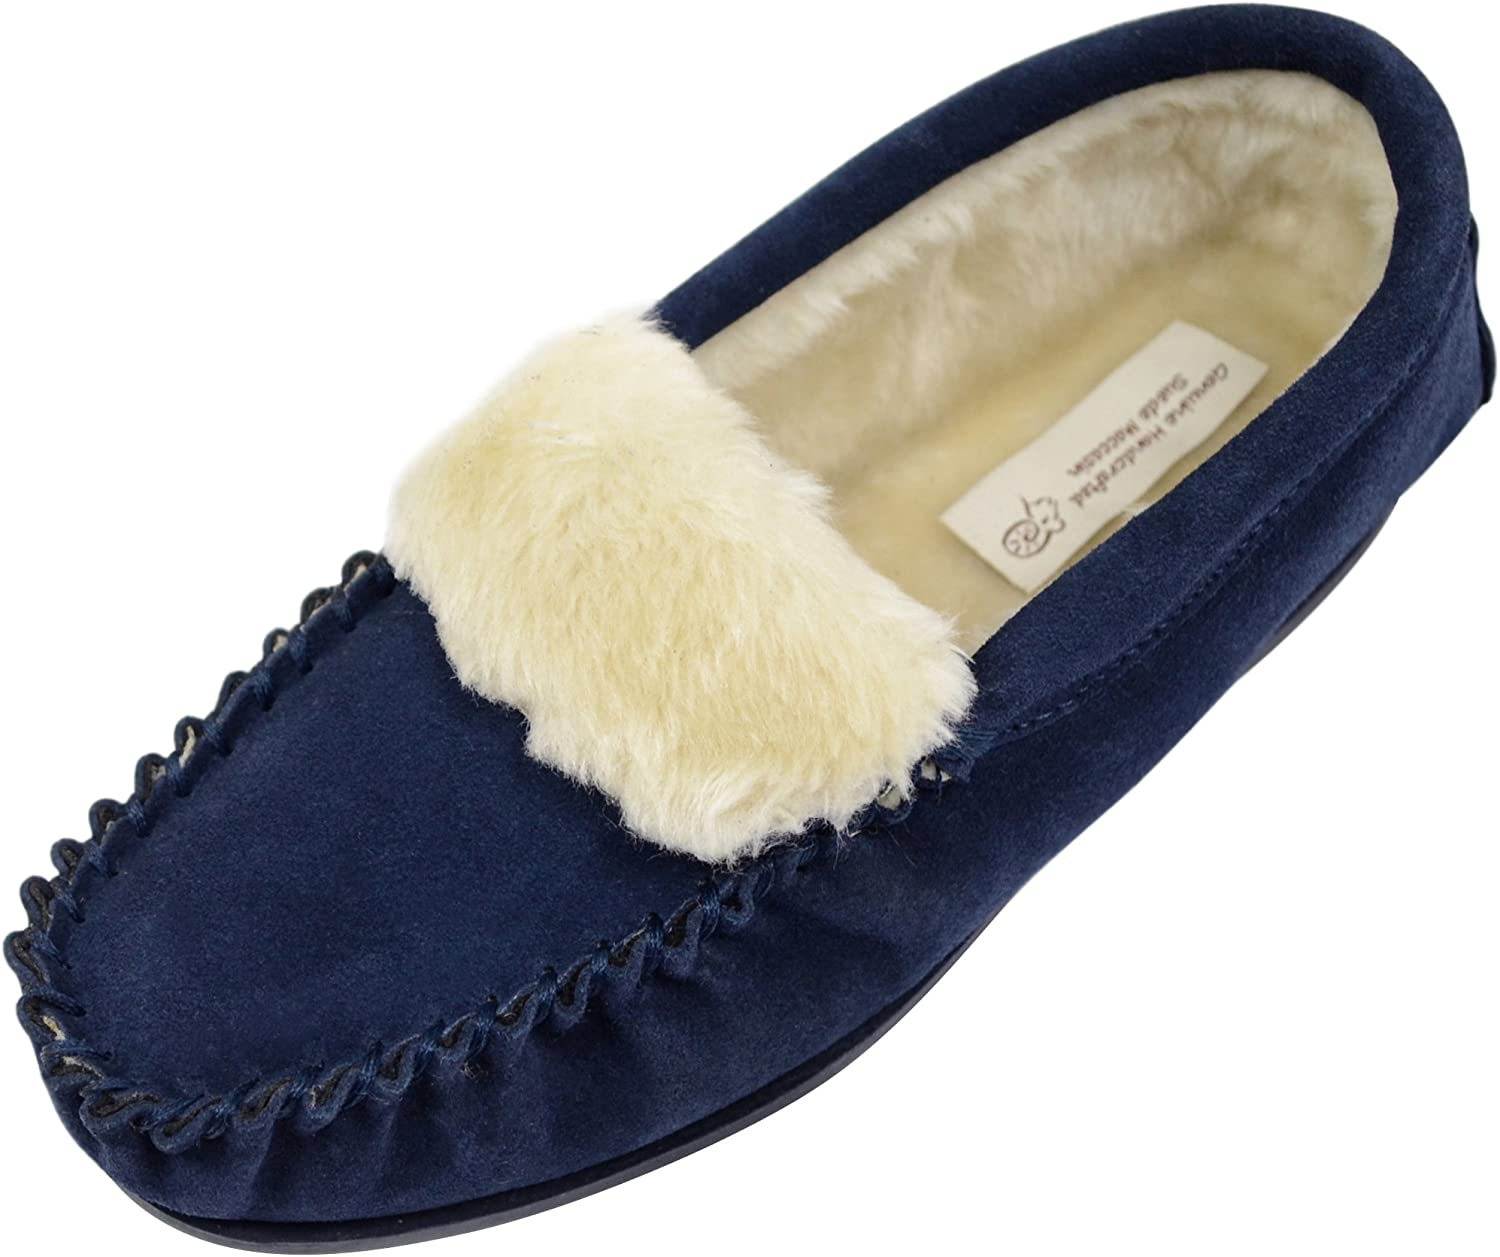 ABSOLUTE FOOTWEAR Ladies Womens Suede Sheepskin Moccasins Slippers with Rubber Sole - Navy - 8 US